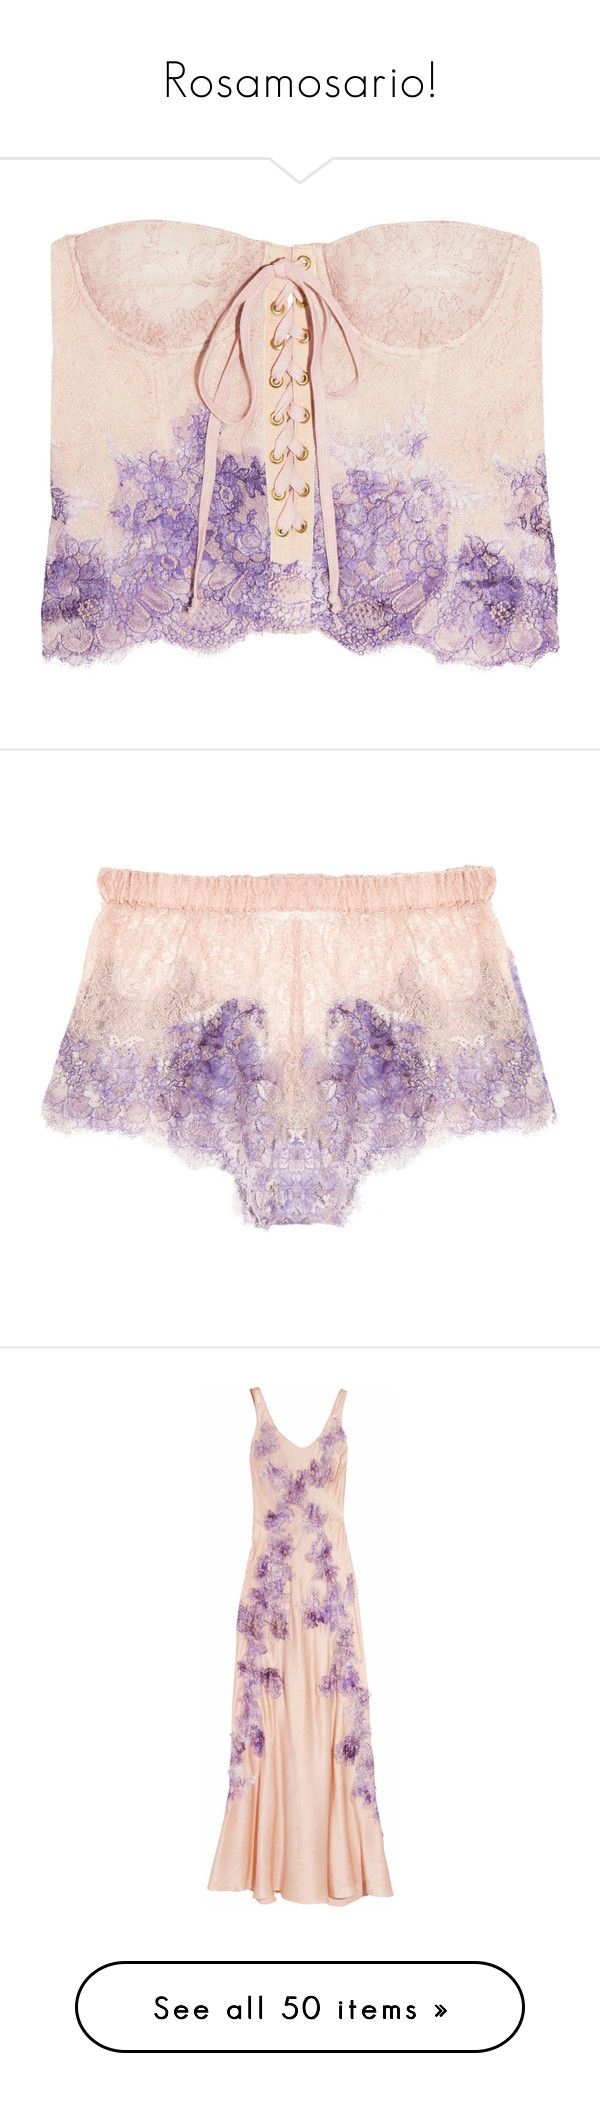 """""""Rosamosario!"""" by blueladybird ❤ liked on Polyvore featuring intimates, shapewear, lingerie, tops, underwear, corsets, women, panties, shorts and purple"""